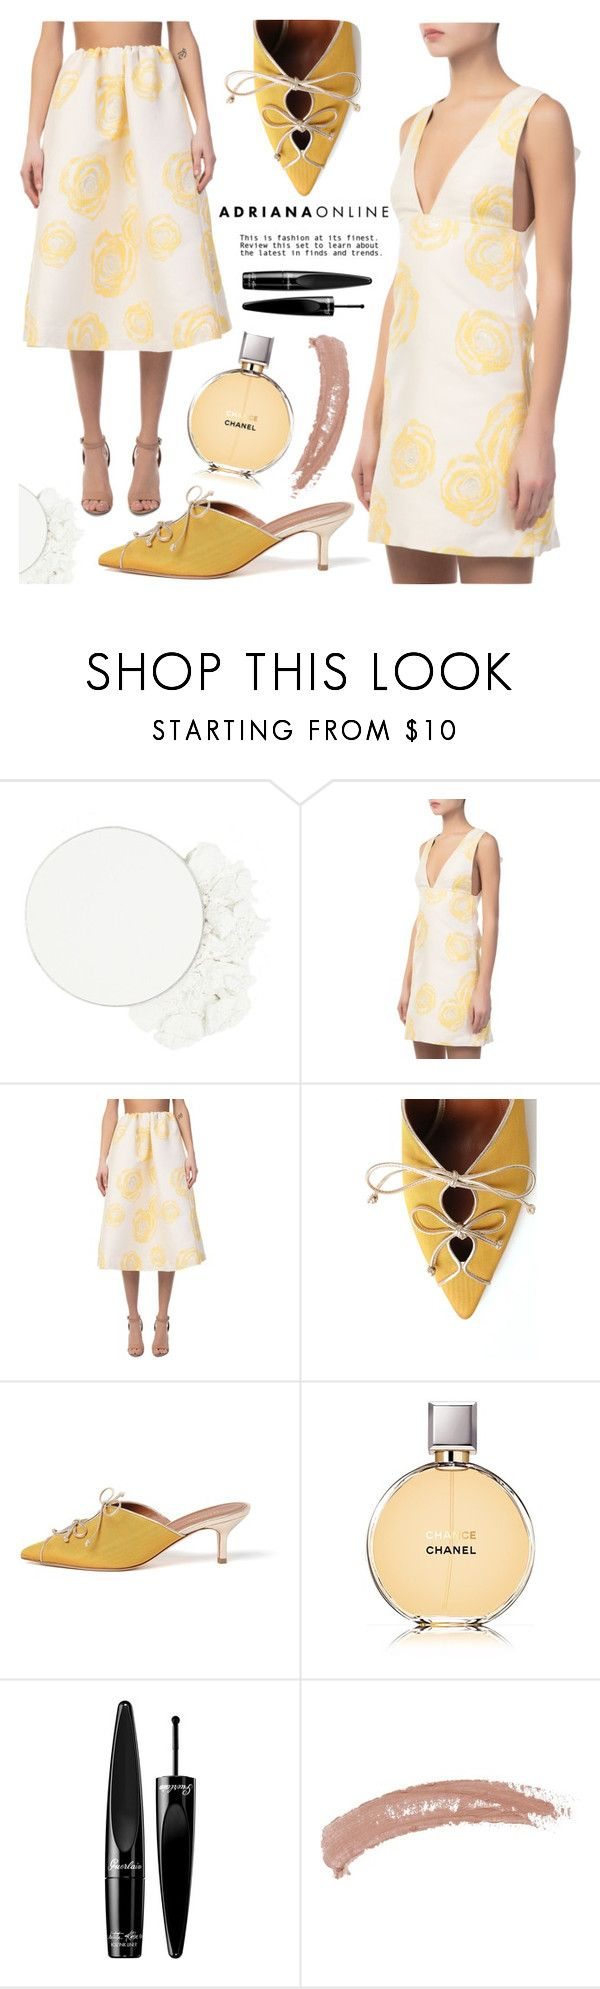 """ADRIANA ONLINE: White+Yellow"" by adrianaonline ❤ liked on Polyvore featuring ittse, Ganni, Malone Souliers, Chanel, Guerlain and Topshop"